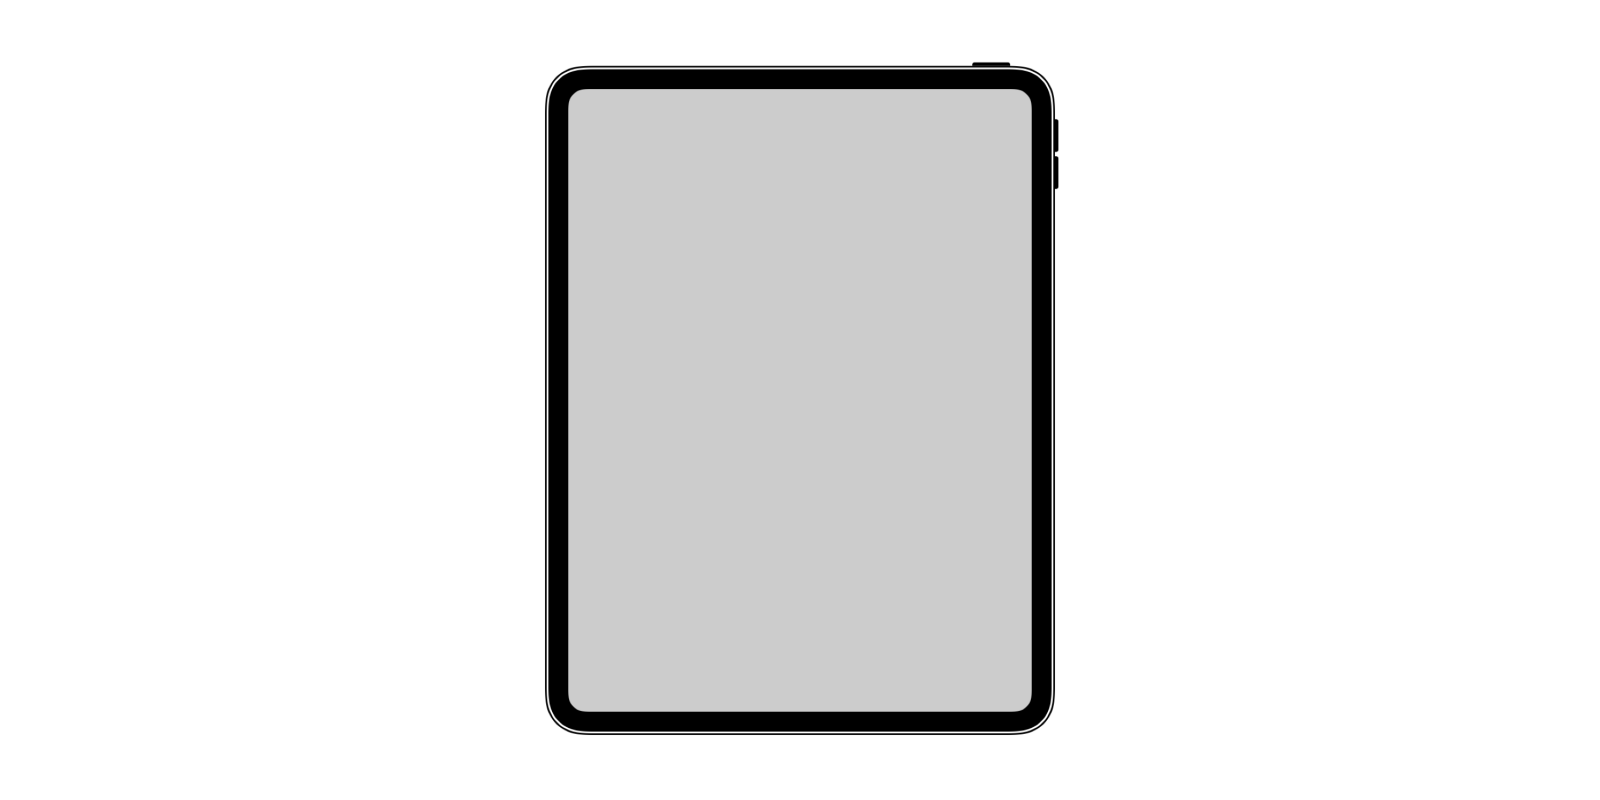 Exclusive: Icon found in iOS shows 2018 iPad Pro.